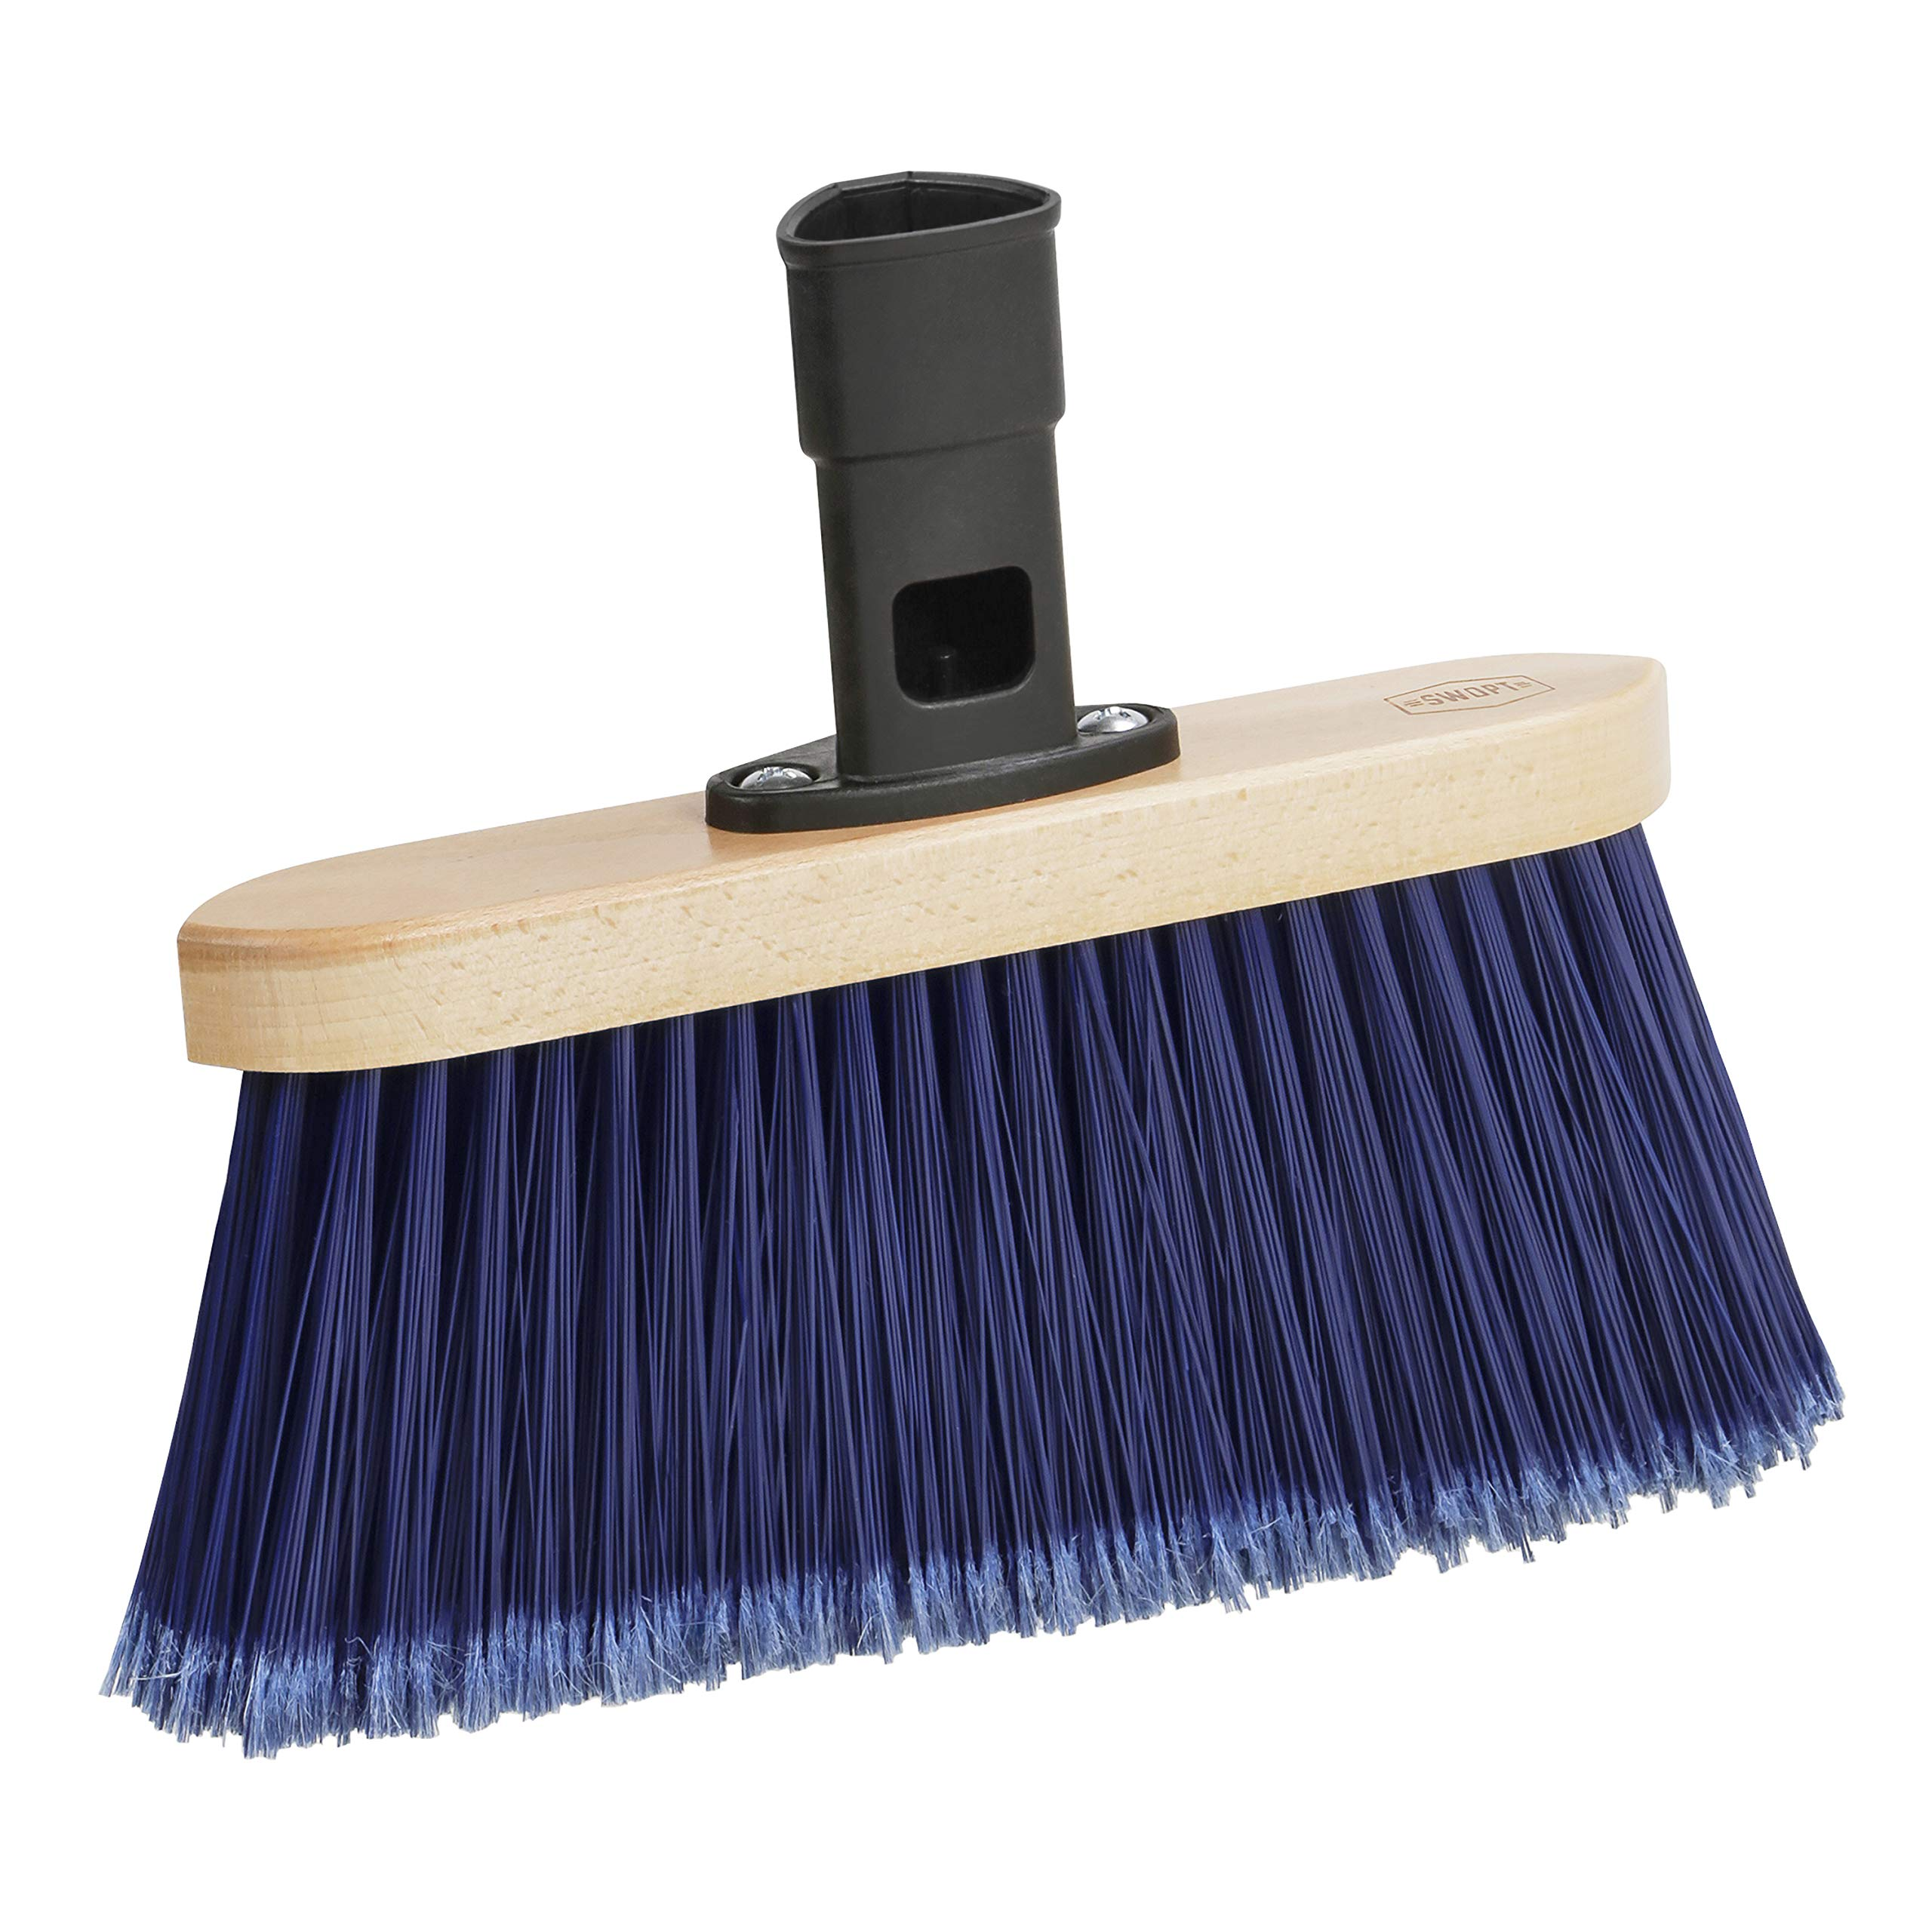 SWOPT Premium Multi-Surface Angle Broom Head – Angled Broom for Indoor and Outdoor Use – Interchangeable with Other SWOPT Products for More Efficient Cleaning and Storage, Head Only, Handle Sold Separately, 5119C6